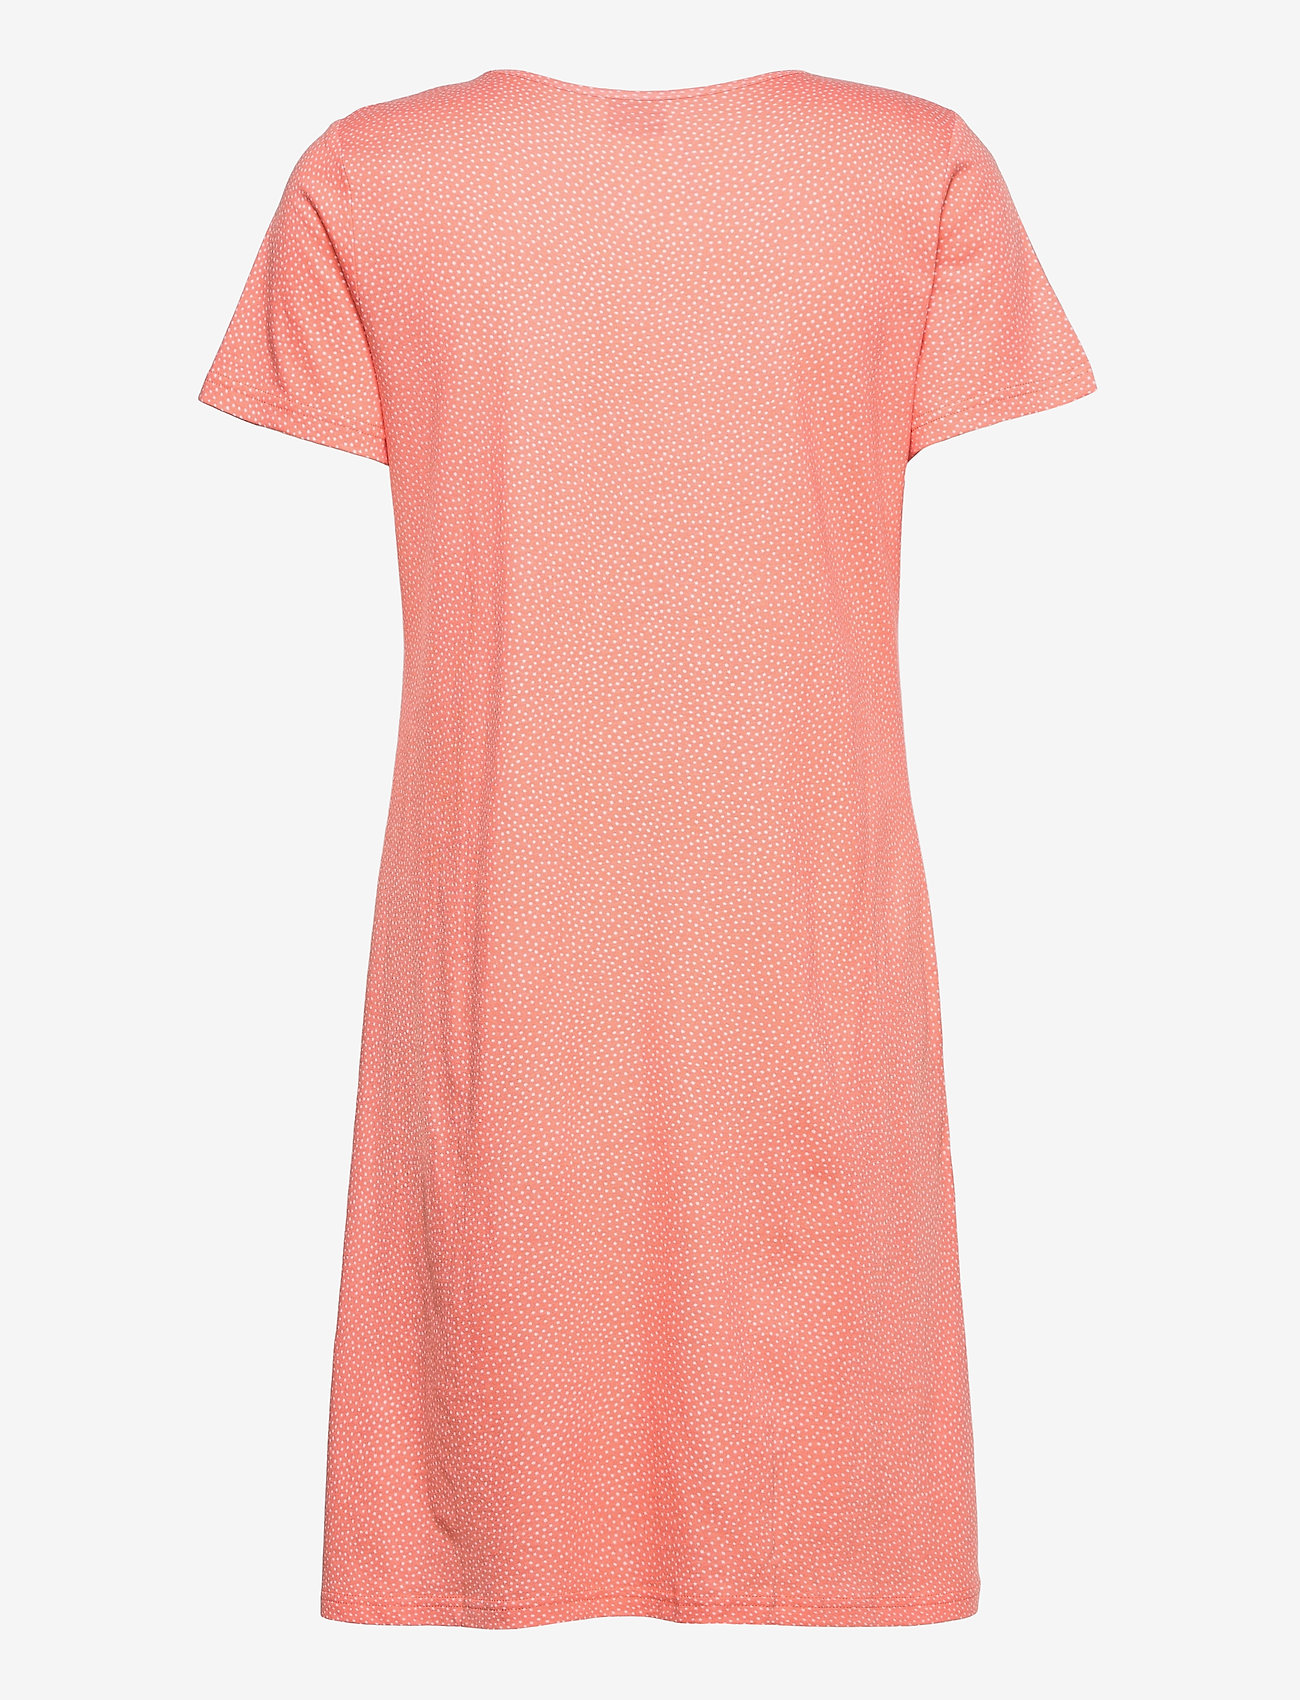 Nanso - Ladies big shirt, Pilkut - nightdresses - red - 1